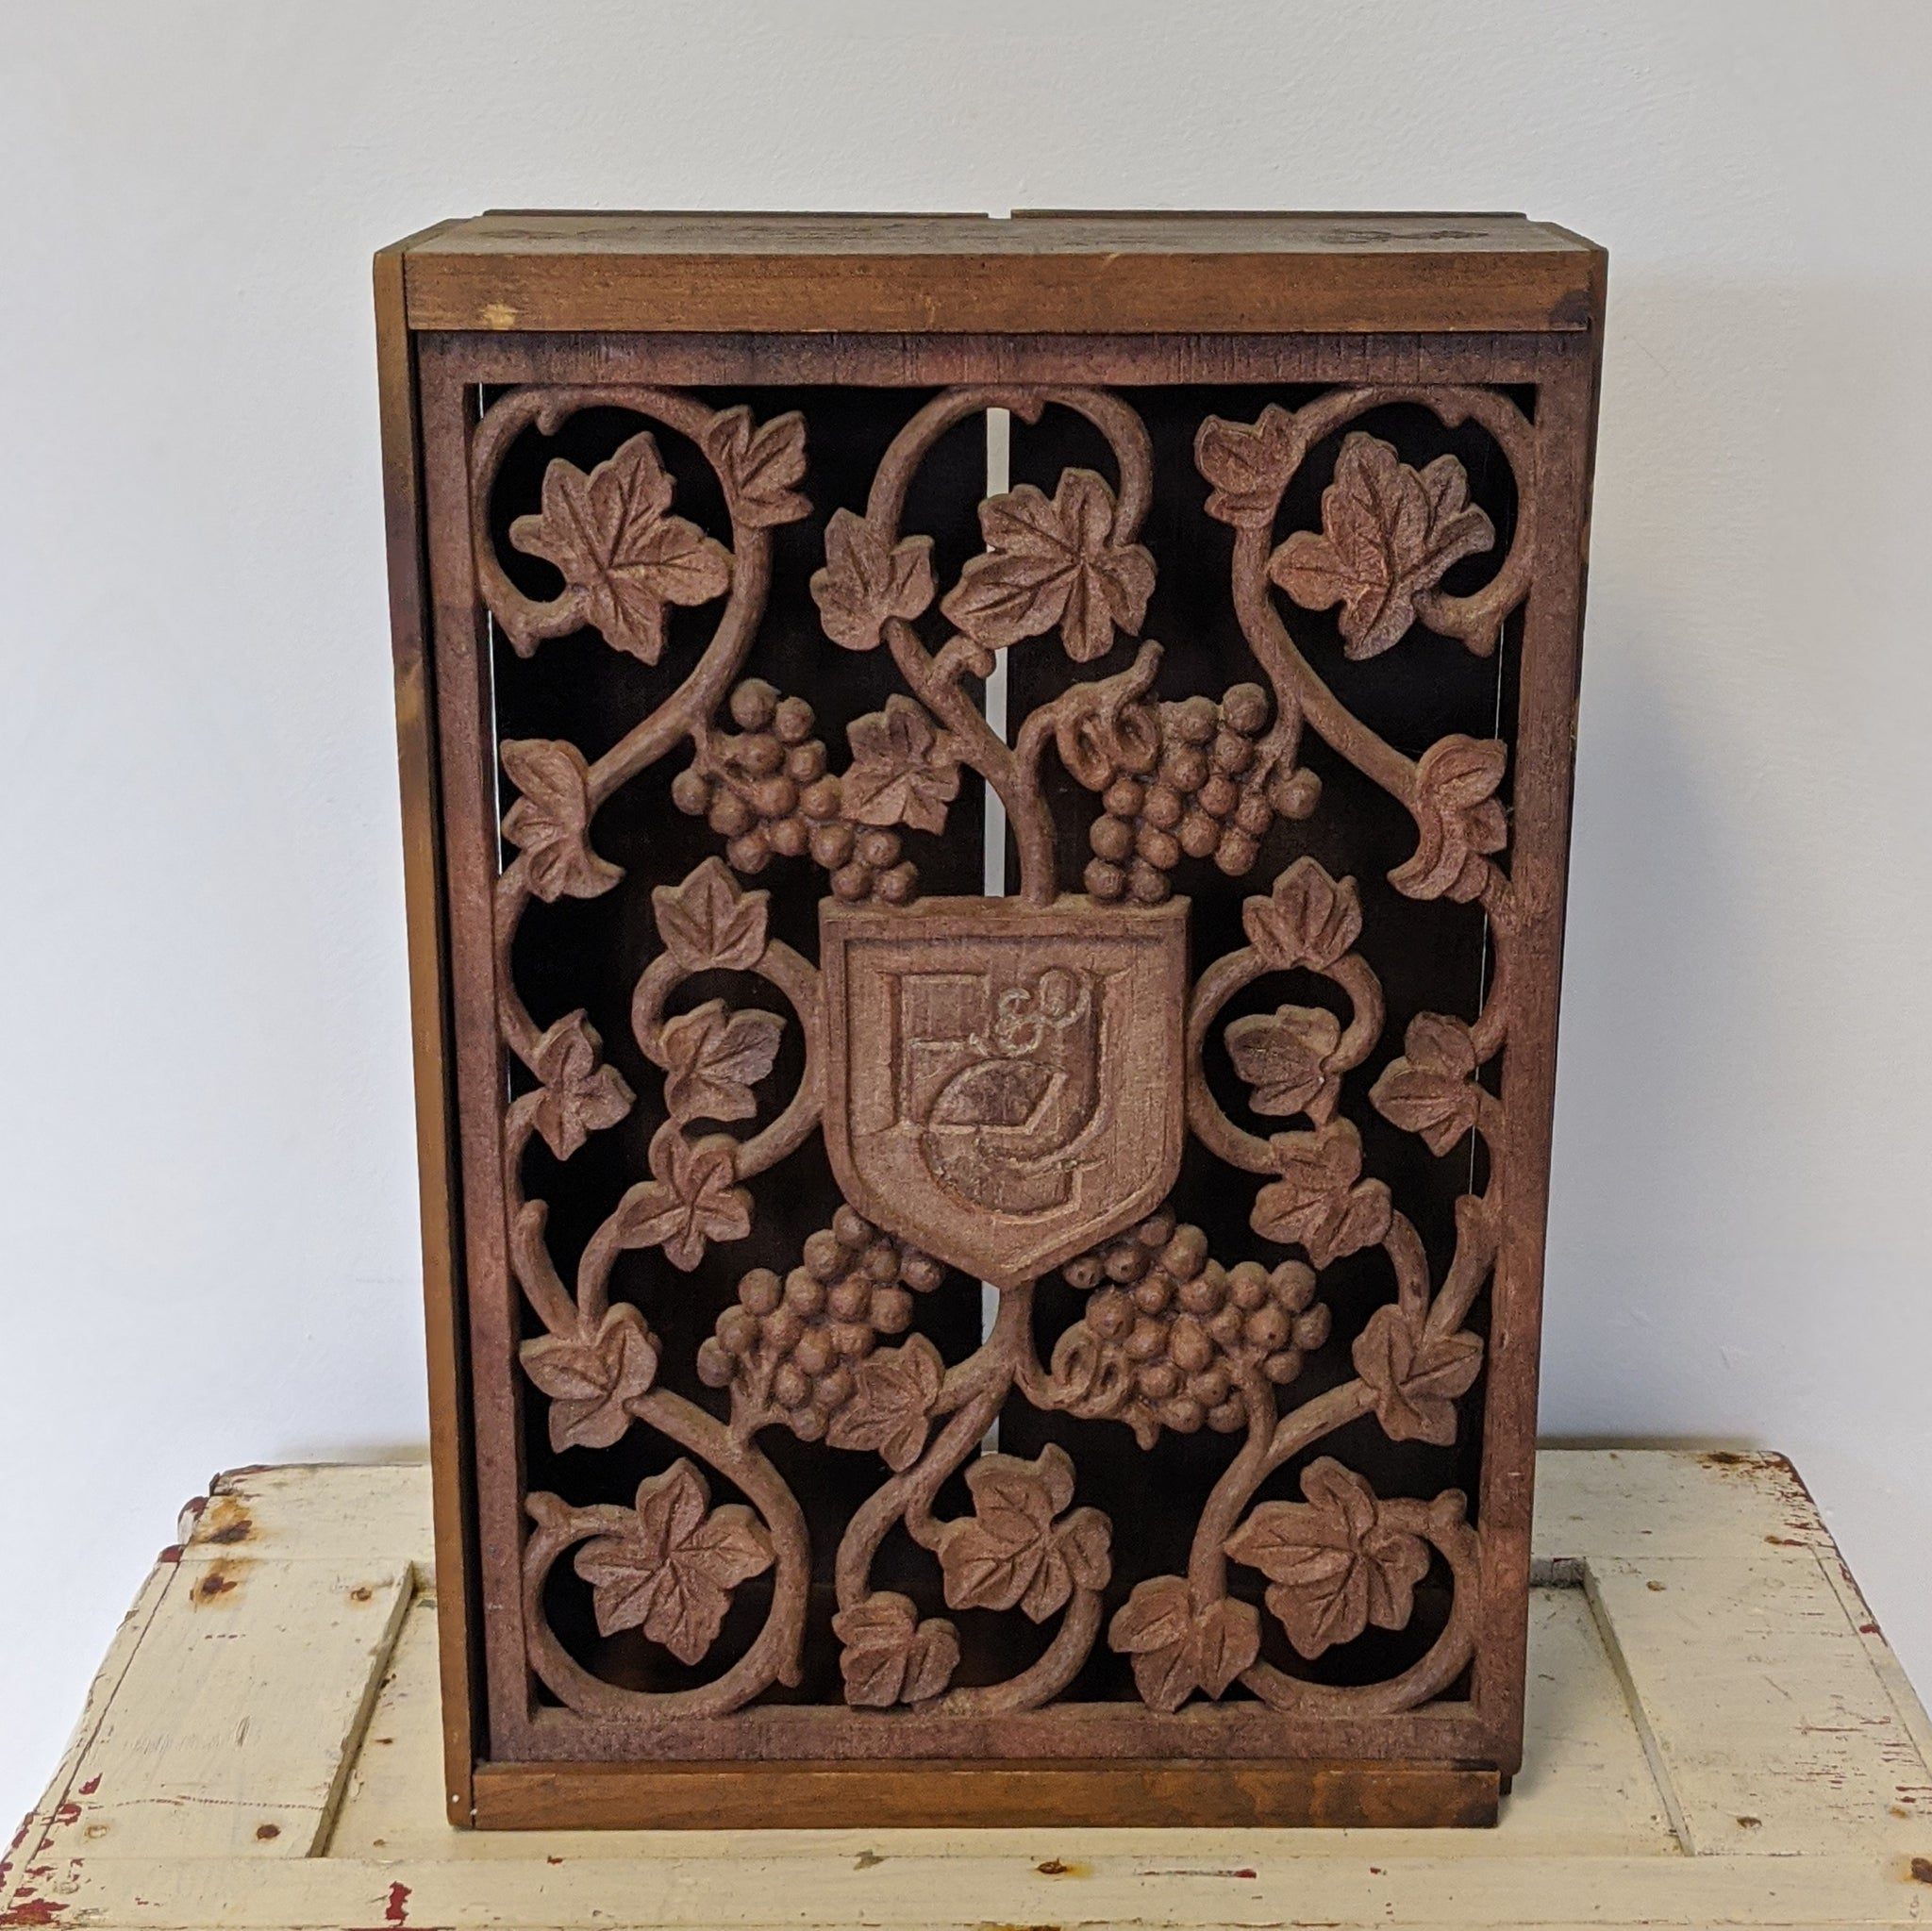 Wooden box with grapevines and E&JG Logo at center